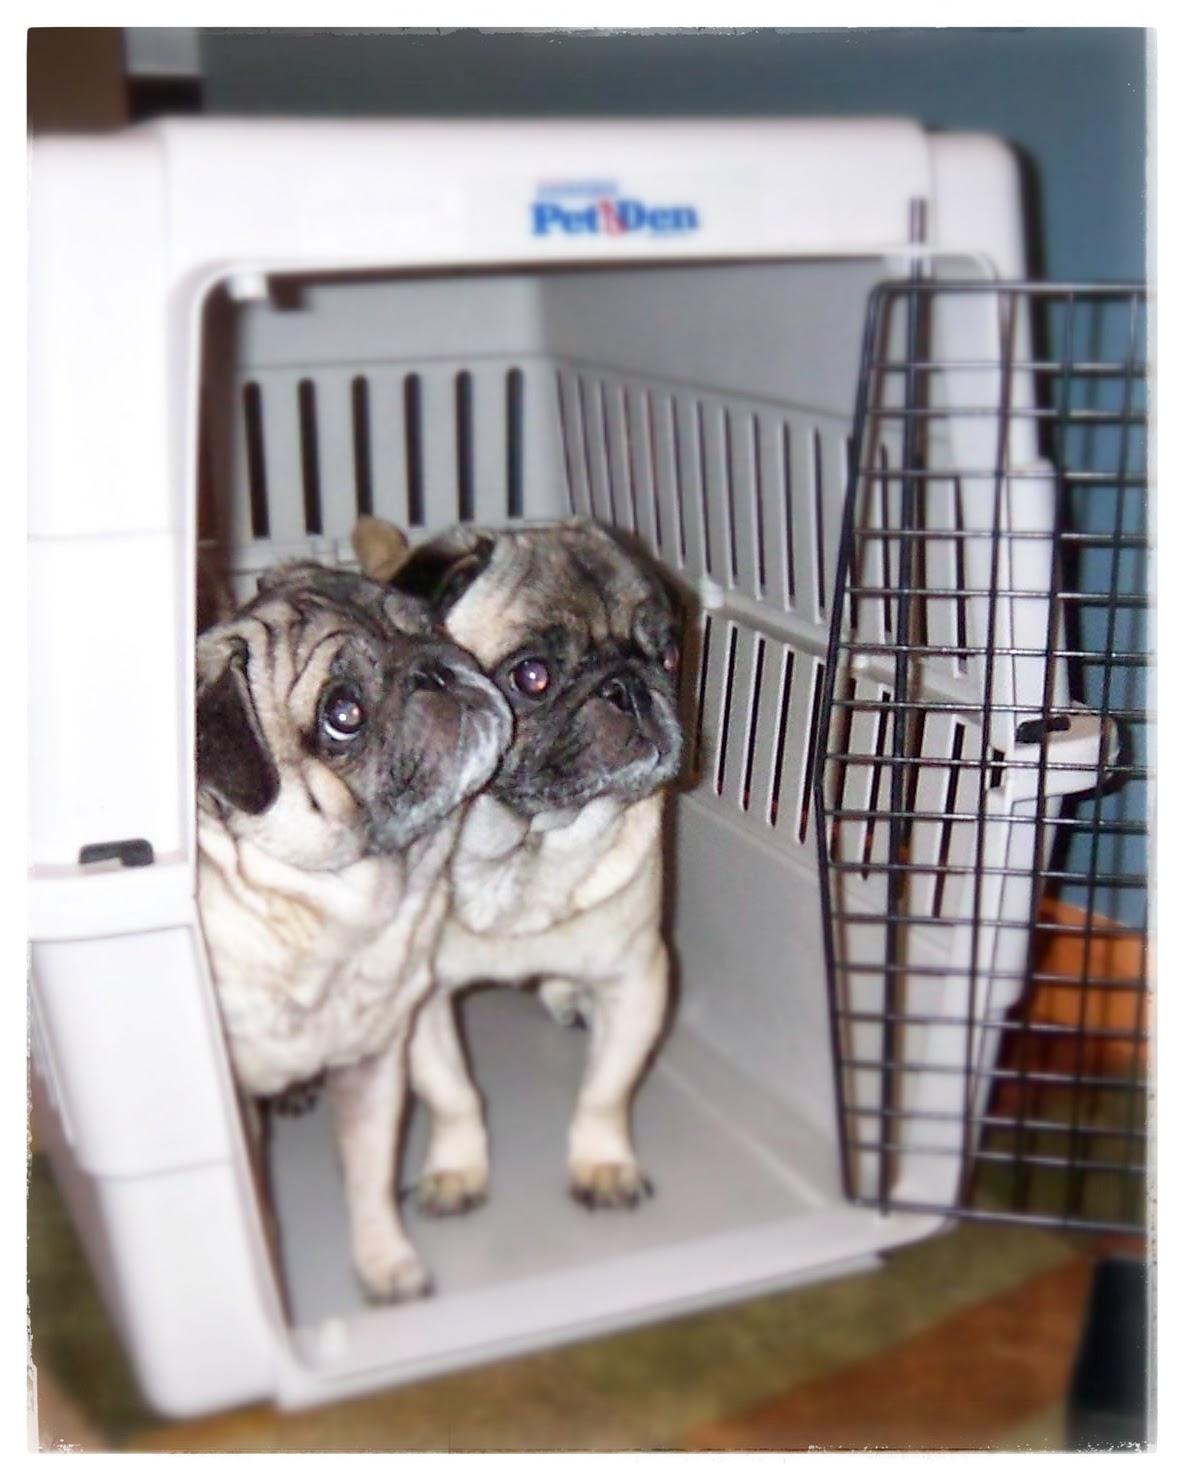 Pablo & Paloma testing a crate.